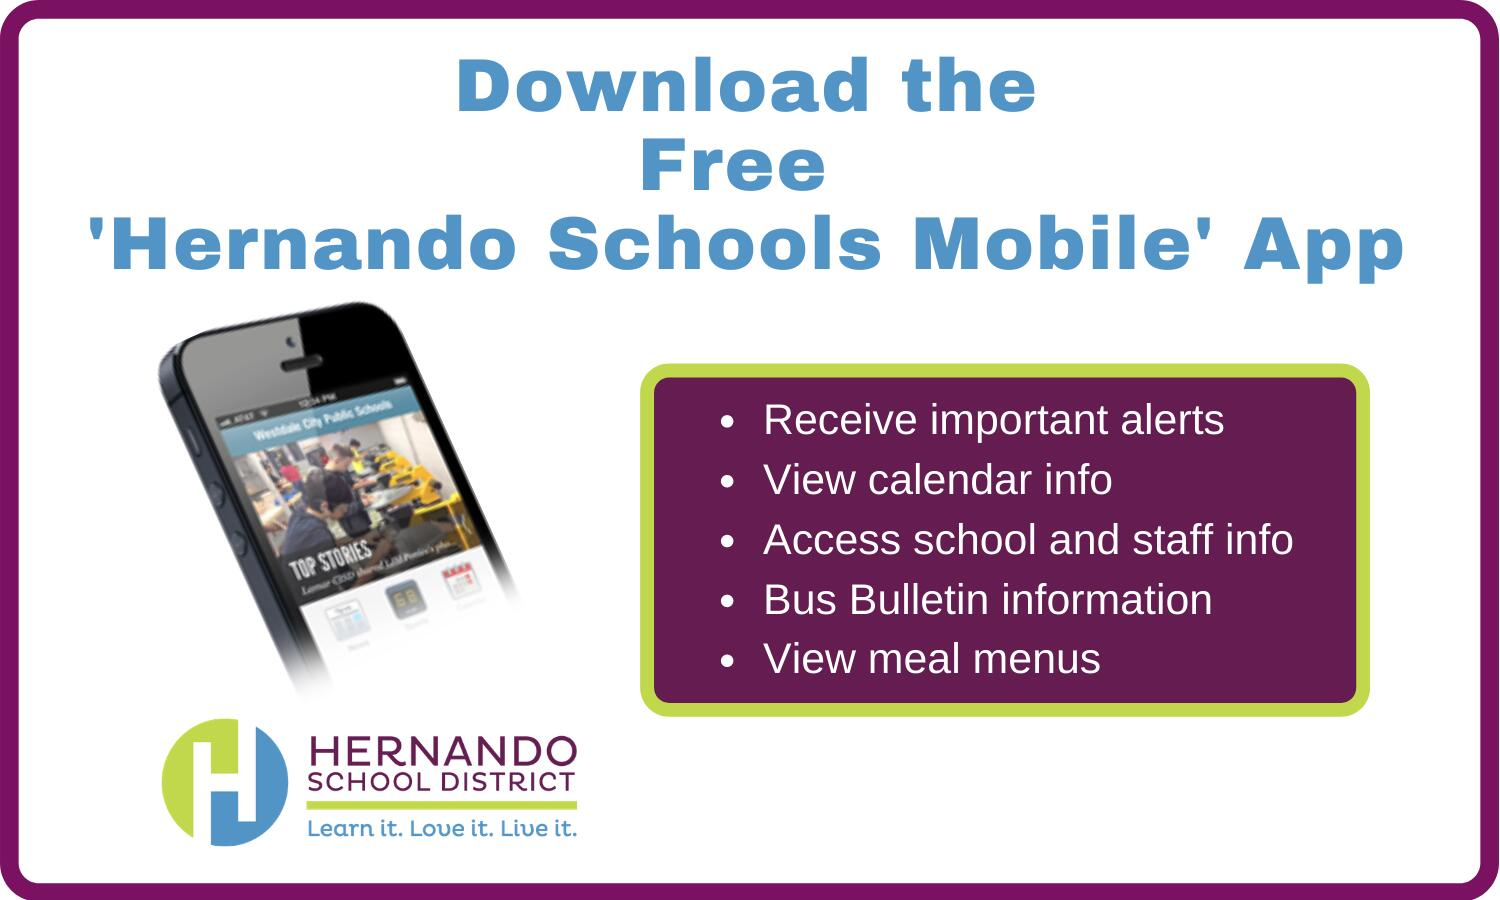 Download the free Hernando Schools Mobile App Today! Receive important alerts, view calendar information, access school and staff information, bus bulletin information, view meal menus